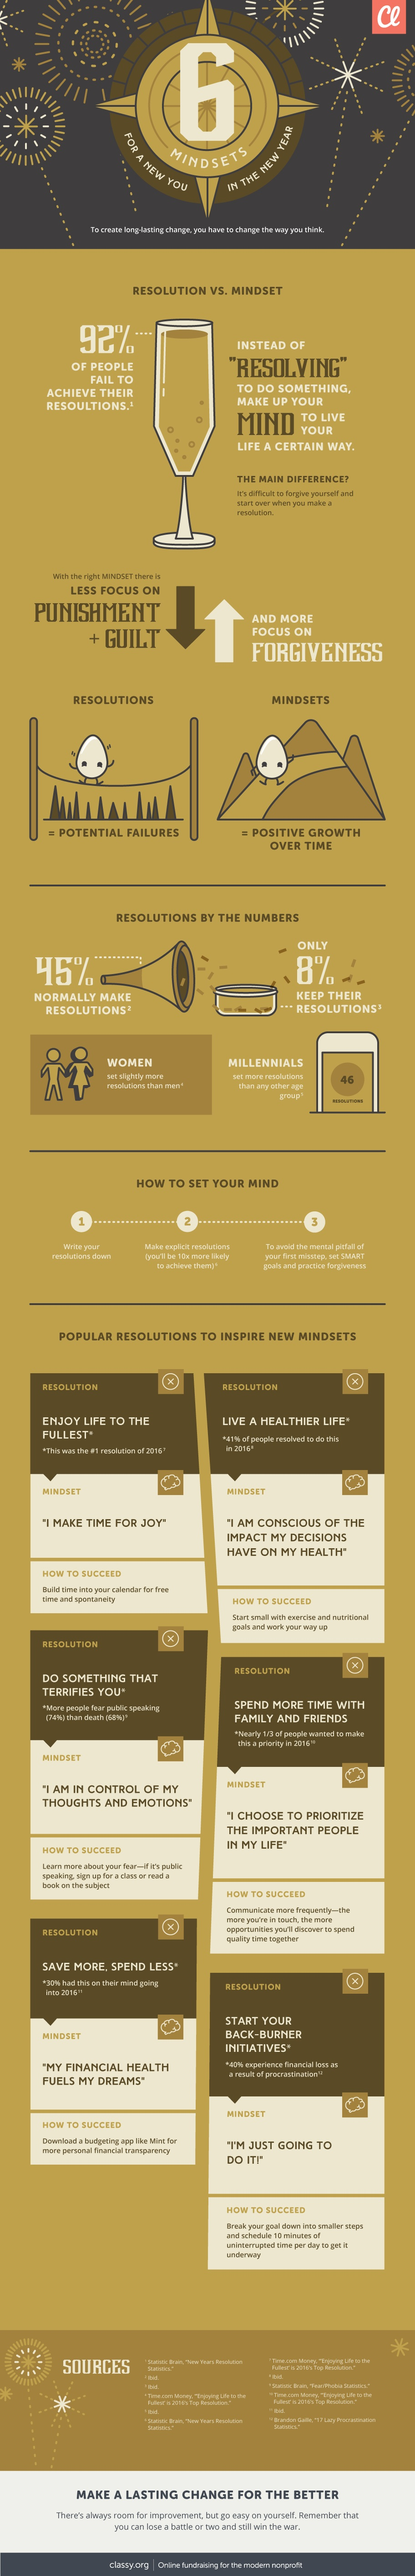 6 Mindsets for a New You in the New Year Infographic